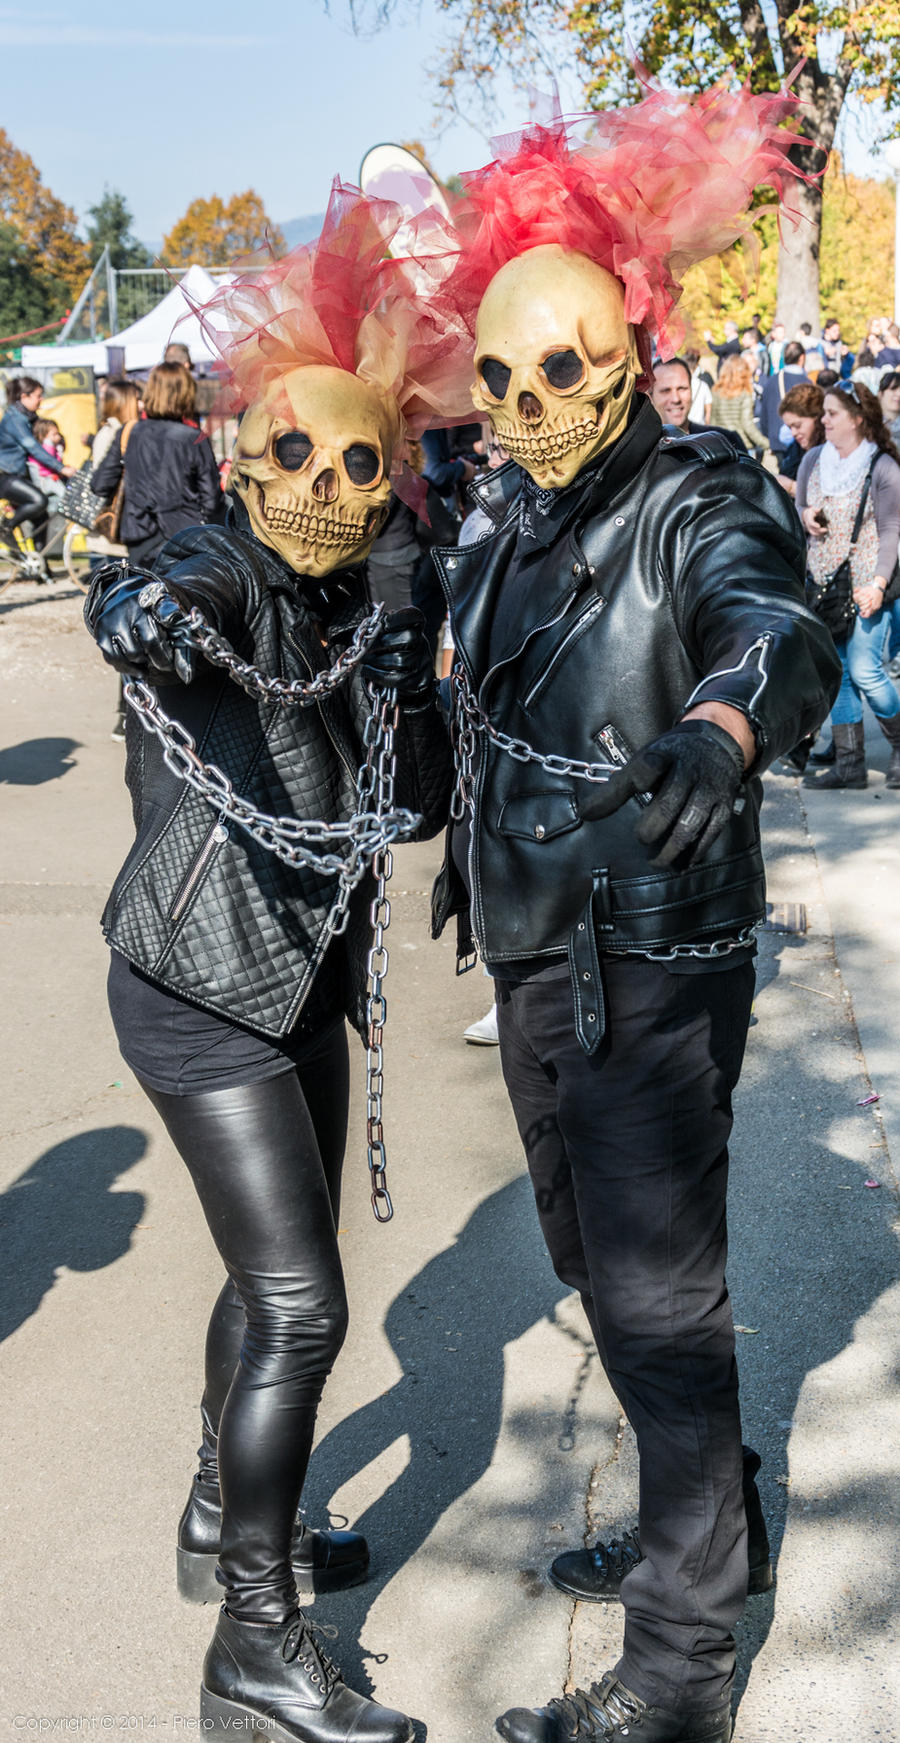 Mr. And Mrs. Ghost Rider by PVproject on DeviantArt